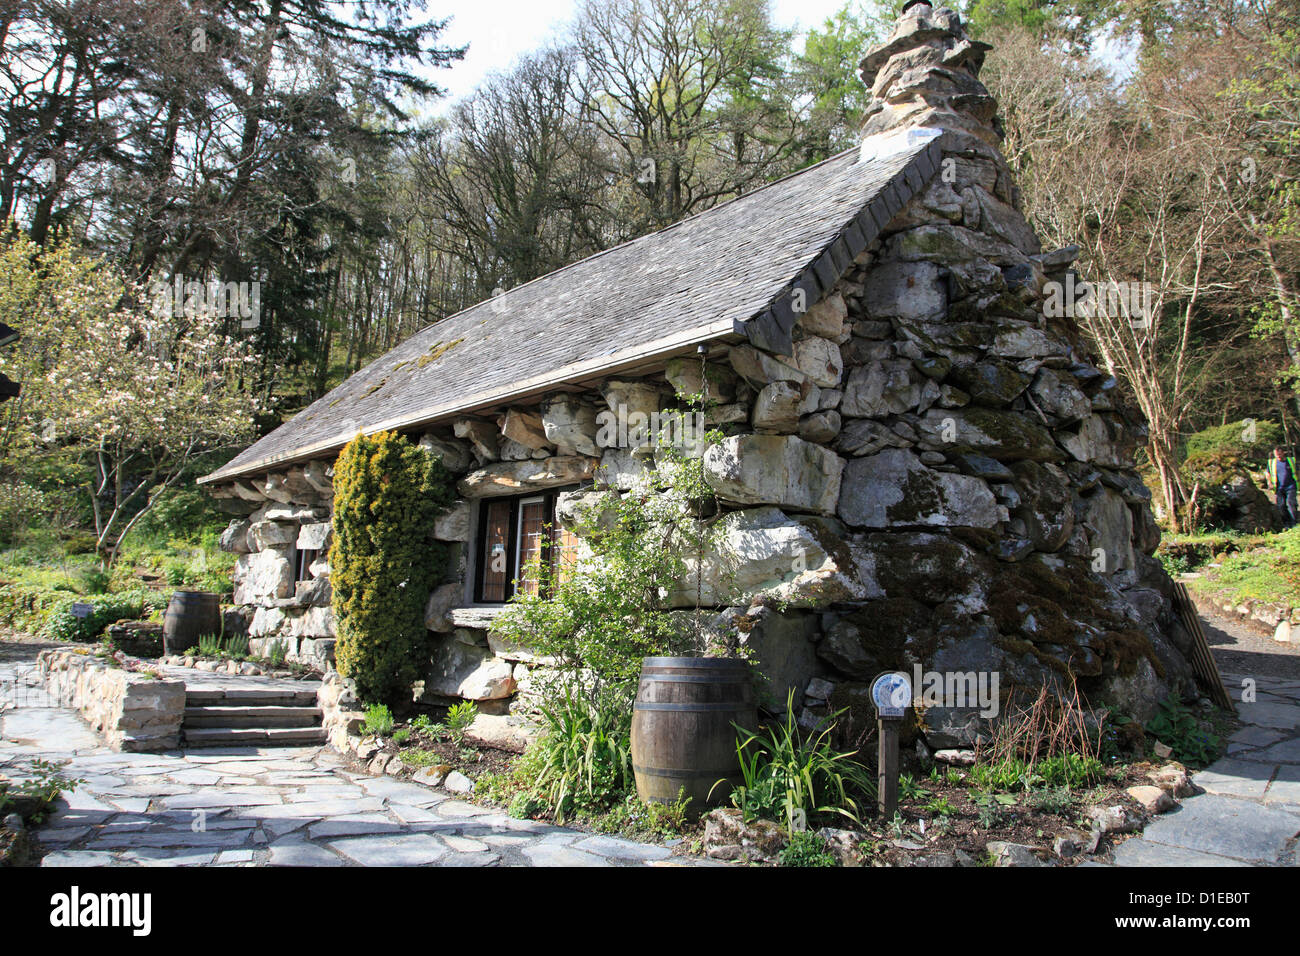 The Ugly House, Ty Hyll, Snowdonia National Park, Snowdonia, North Wales, Wales, United Kingdom, Europe - Stock Image